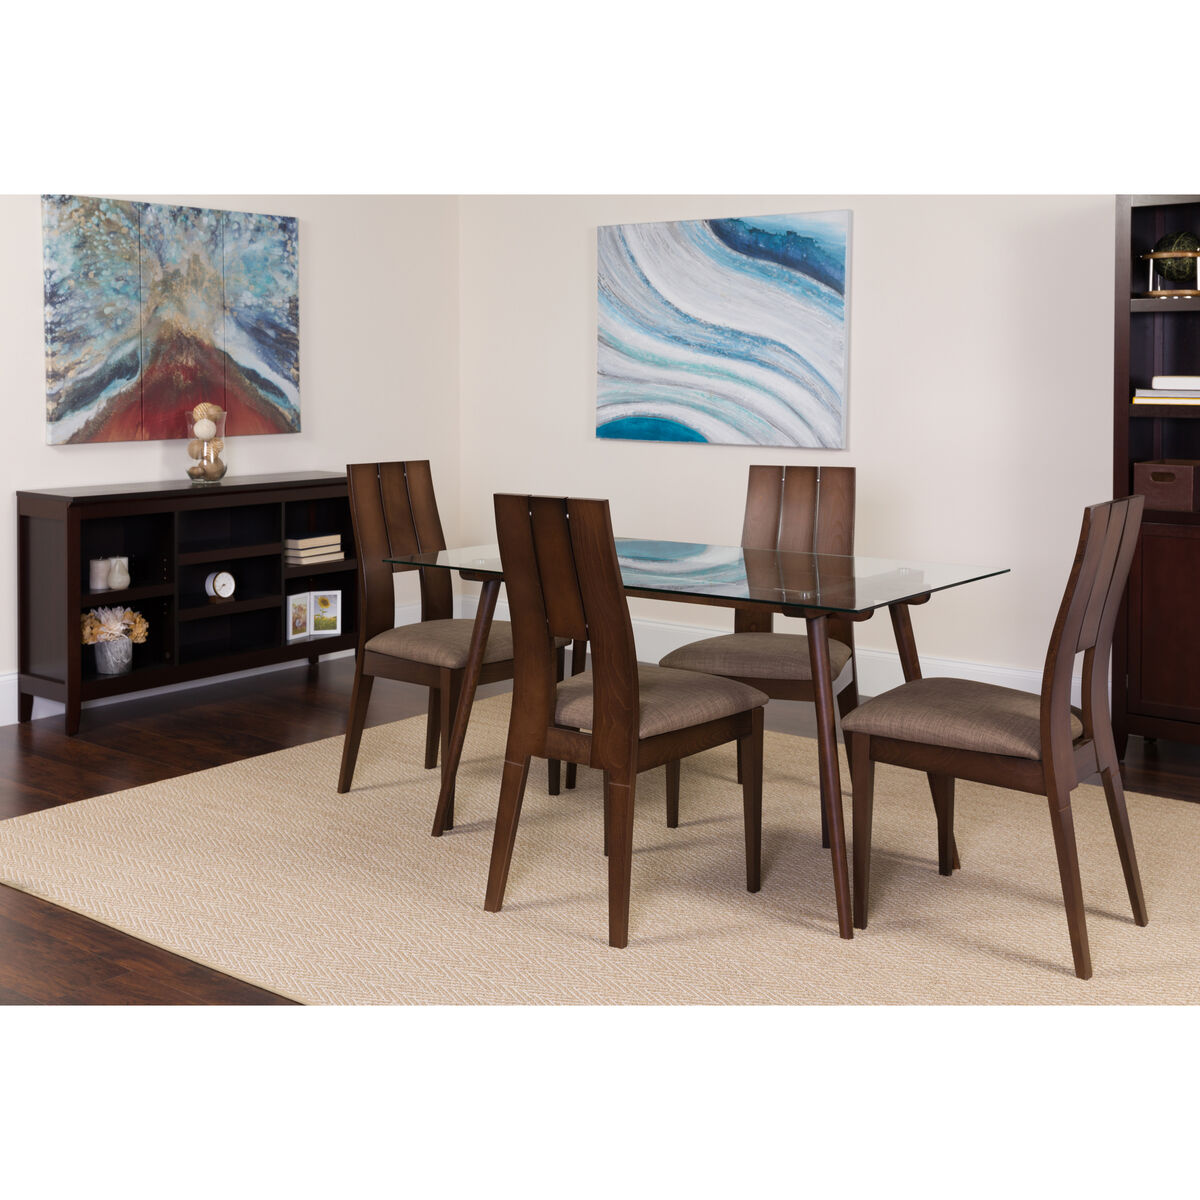 Our carson 5 piece espresso wood dining table set with glass top and curved slat keyhole